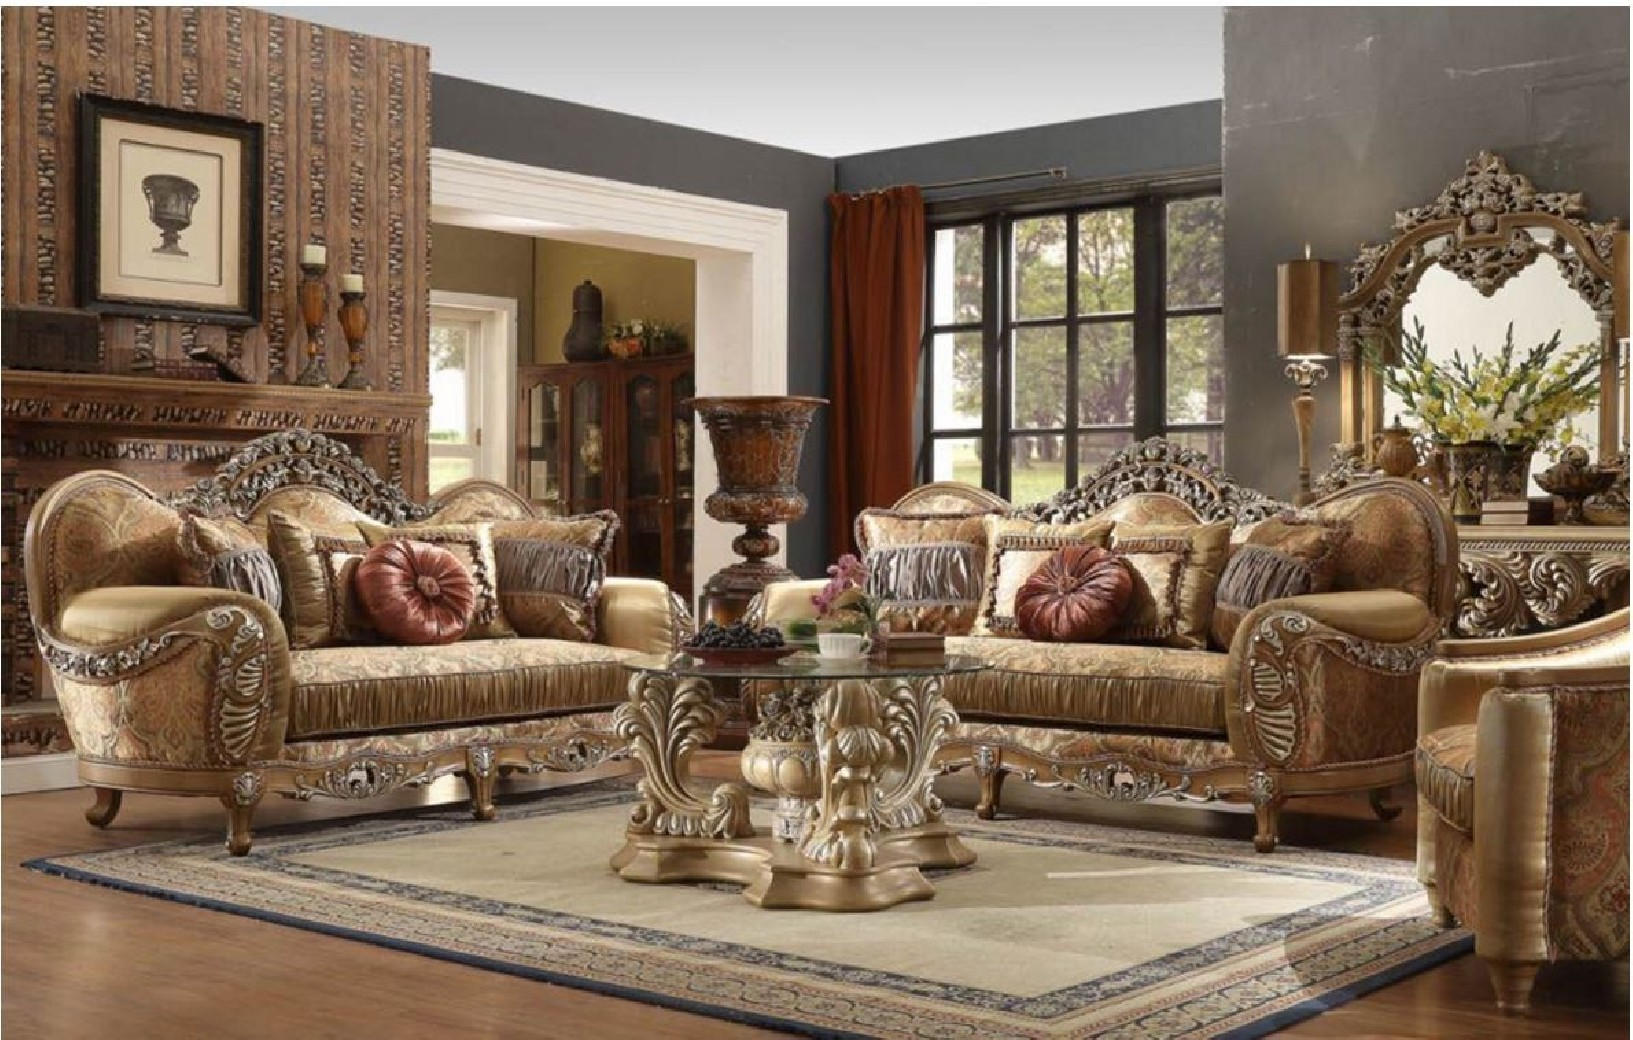 HD 622 Homey Design Upholstery Living Room Set Victorian, European U0026  Classic Design Sofa Set Part 35